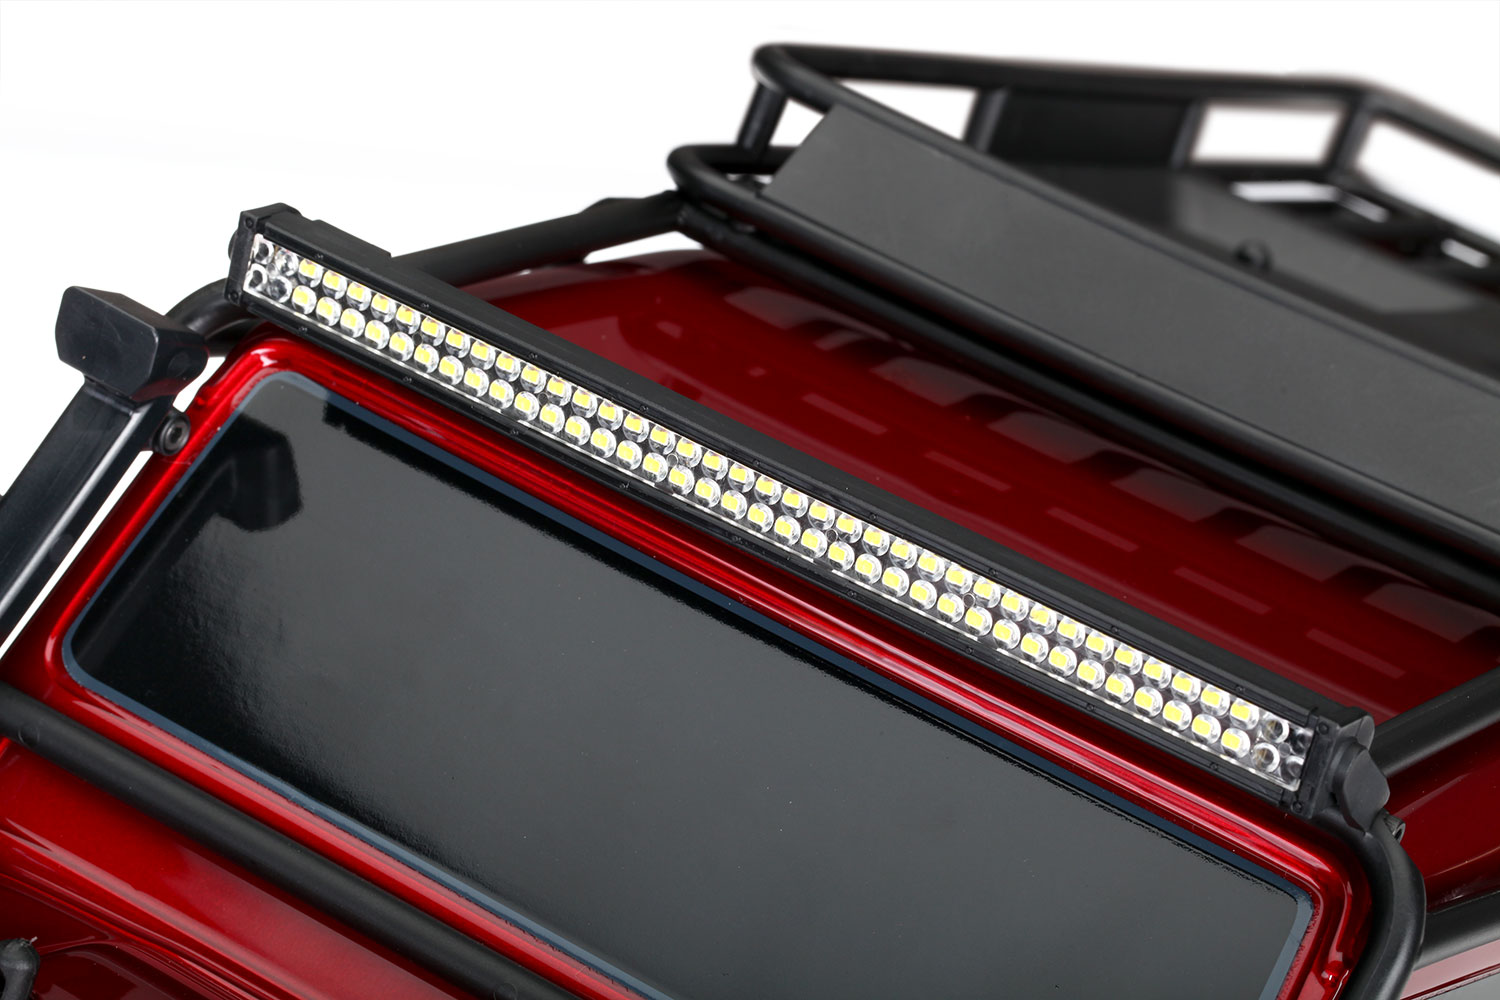 Trx 4 led light kits now available traxxas led light bar with highlow brightness switch aloadofball Gallery